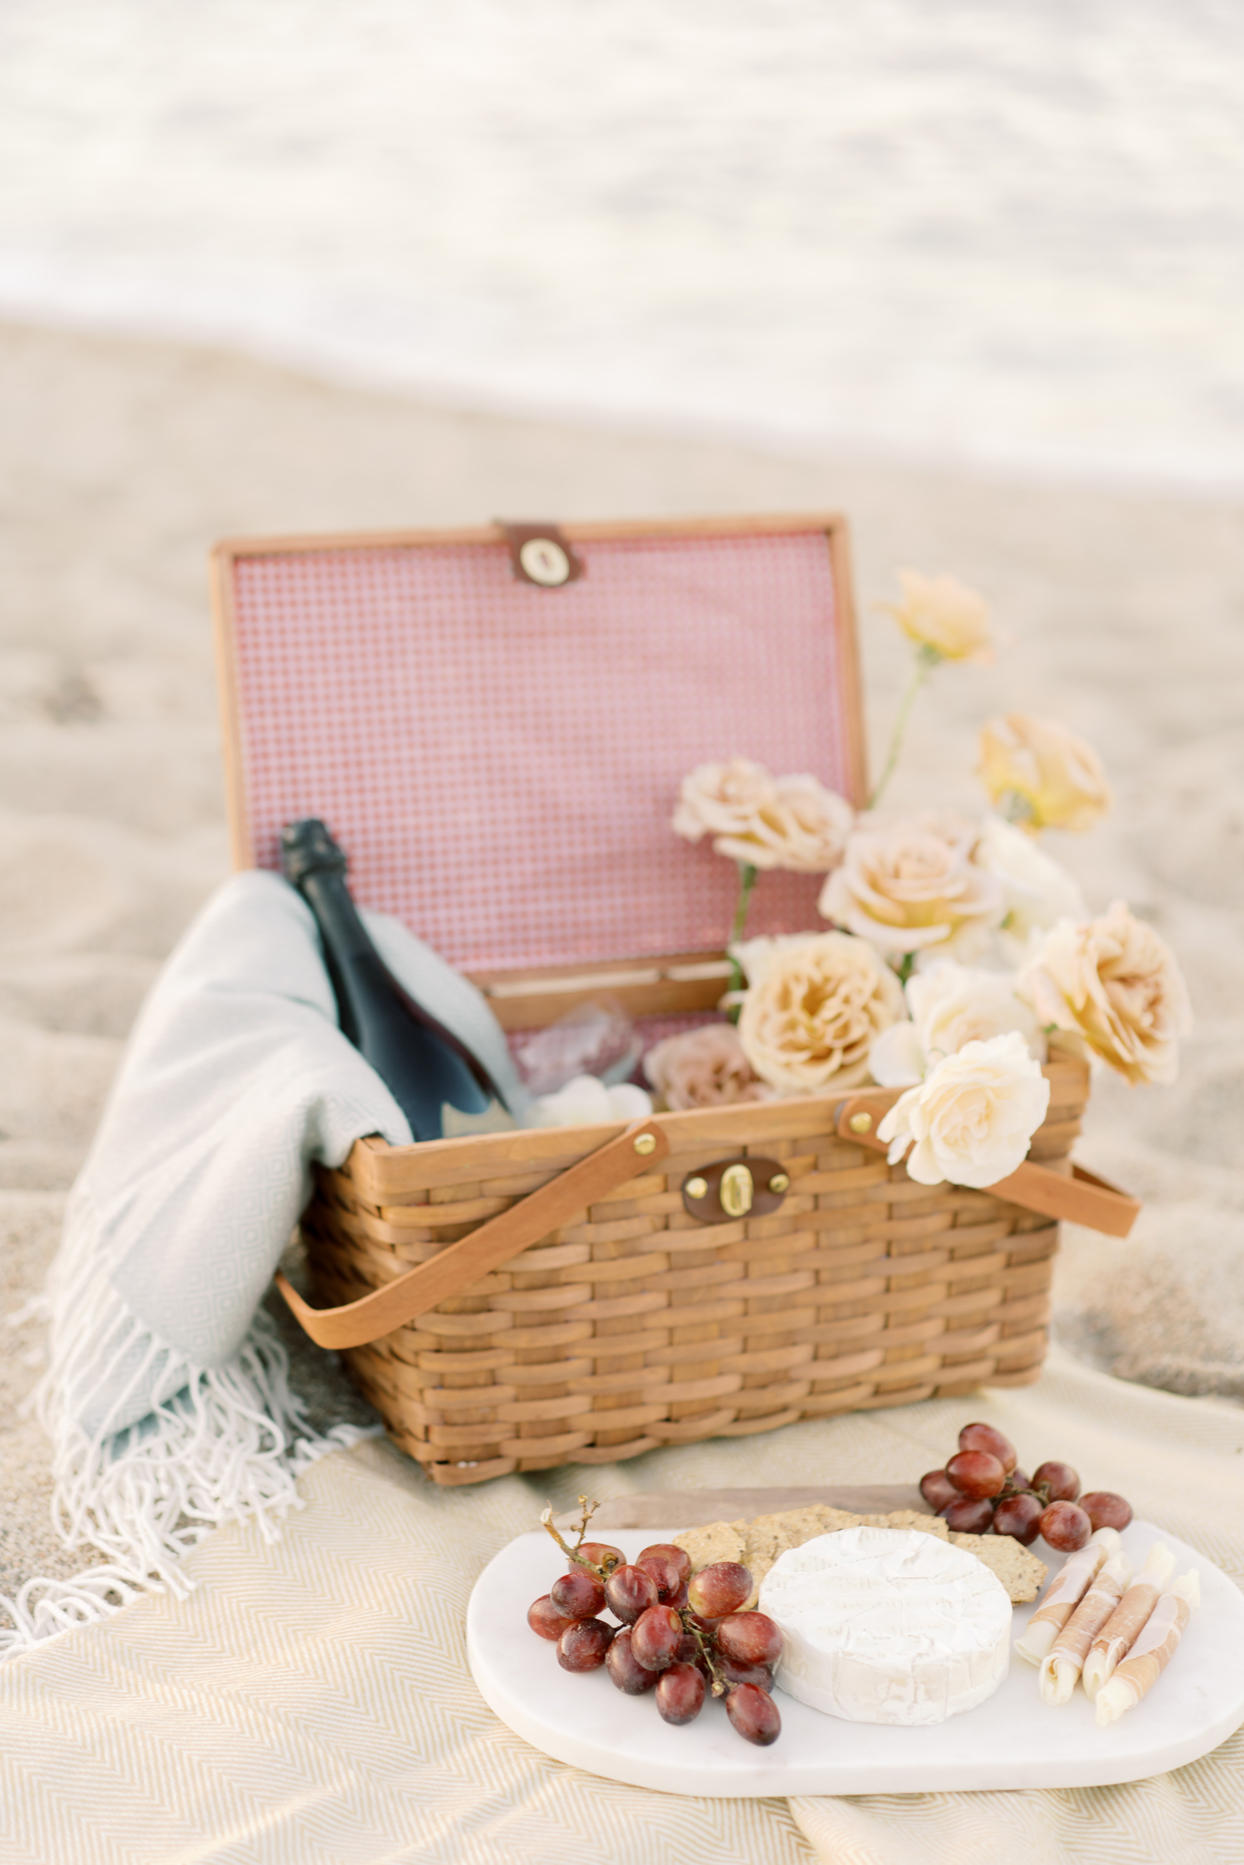 picnic basket with blanket and cheese board